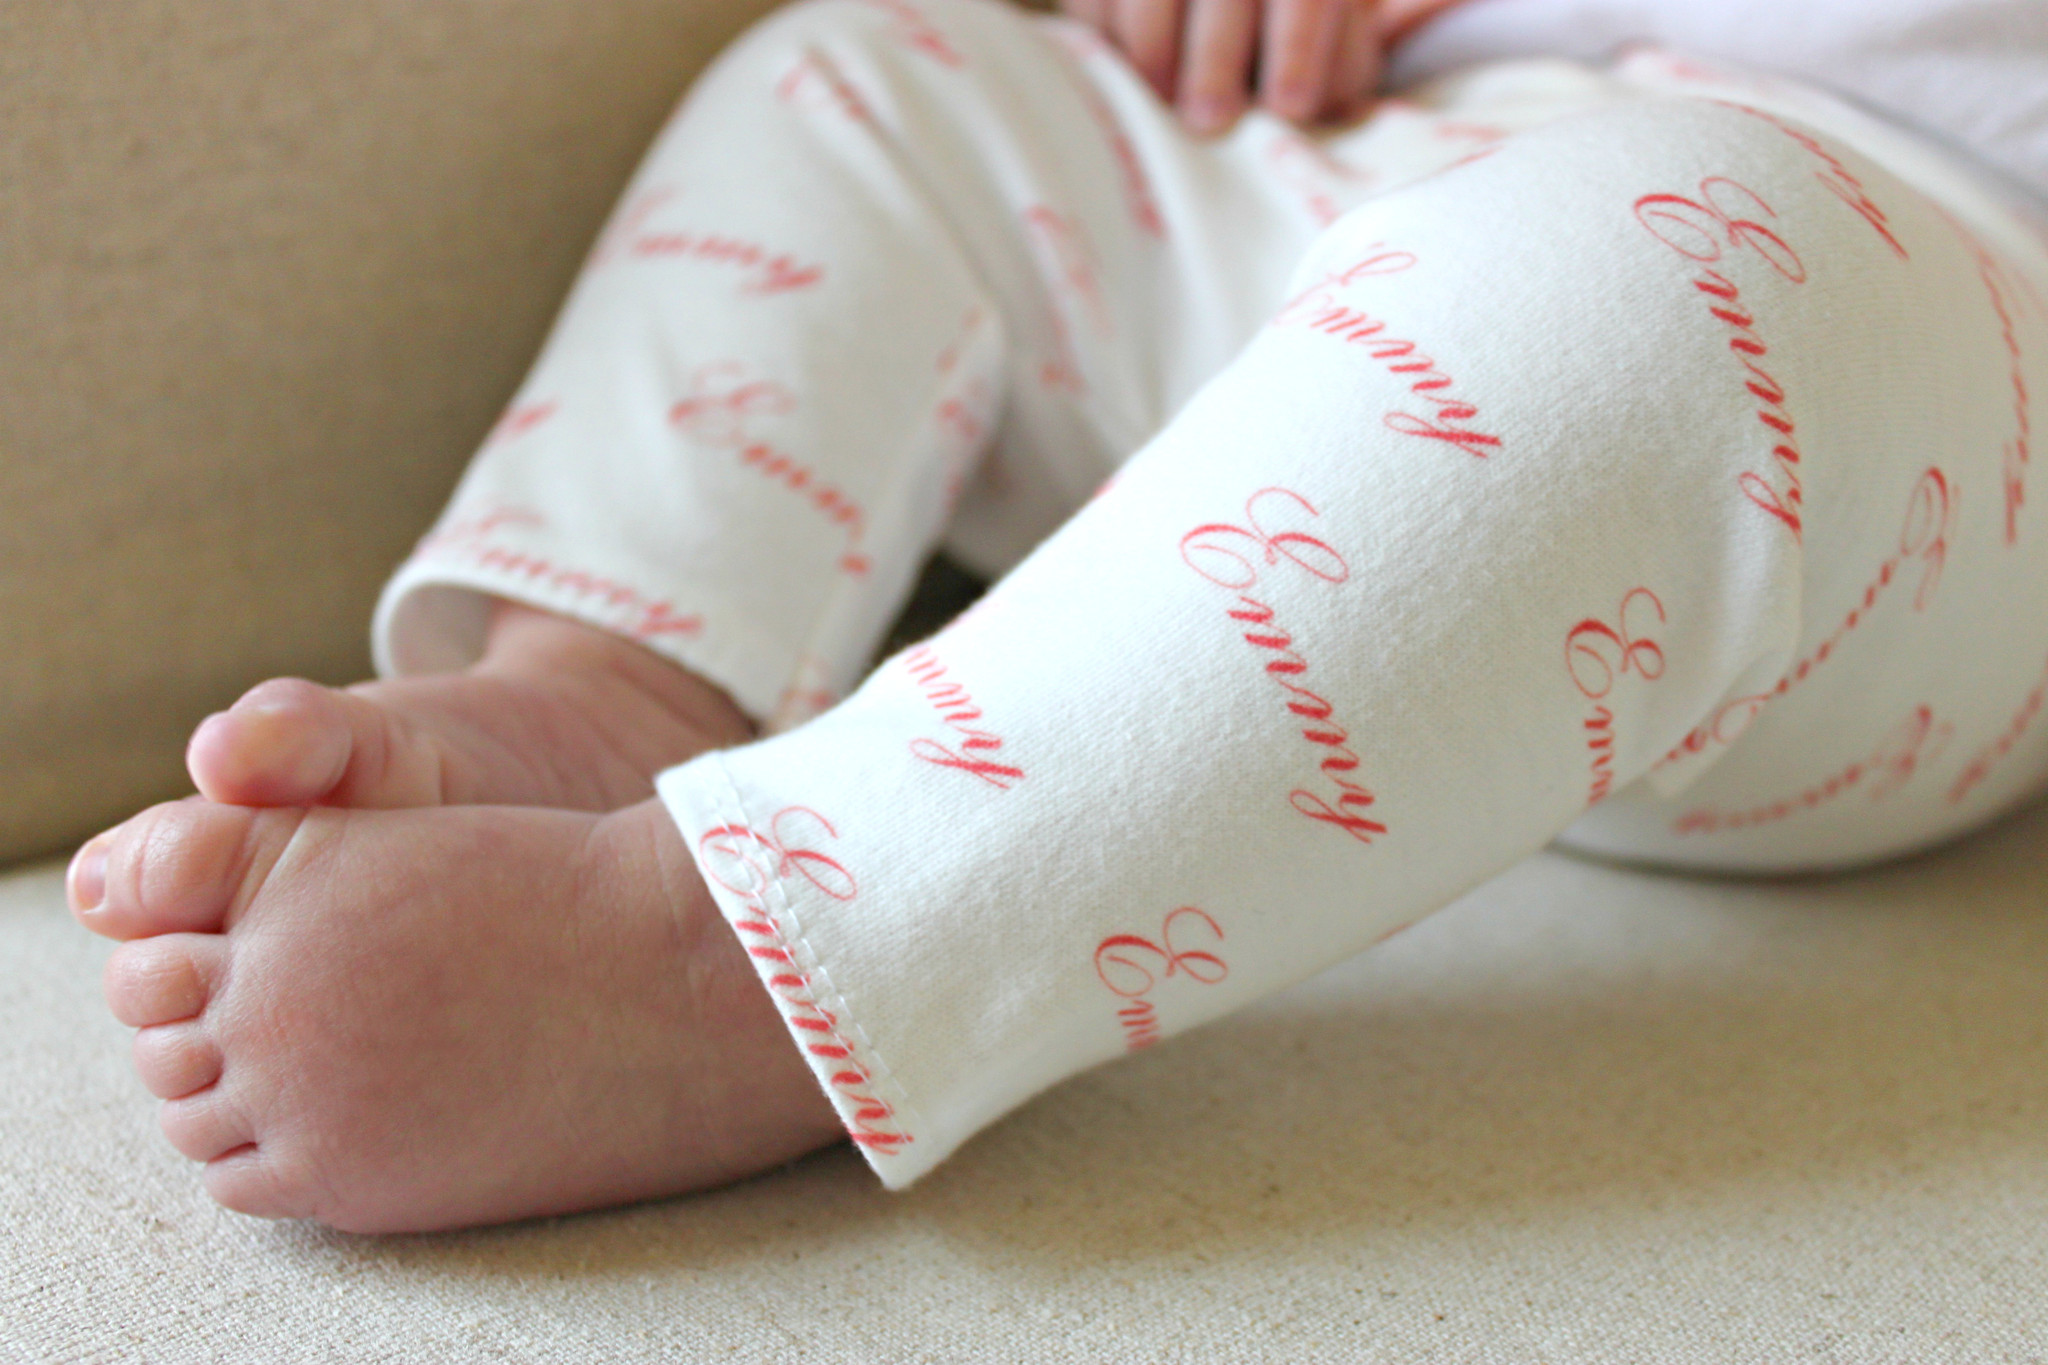 Modern Personalized Baby Gifts - Personalized Baby Leggings